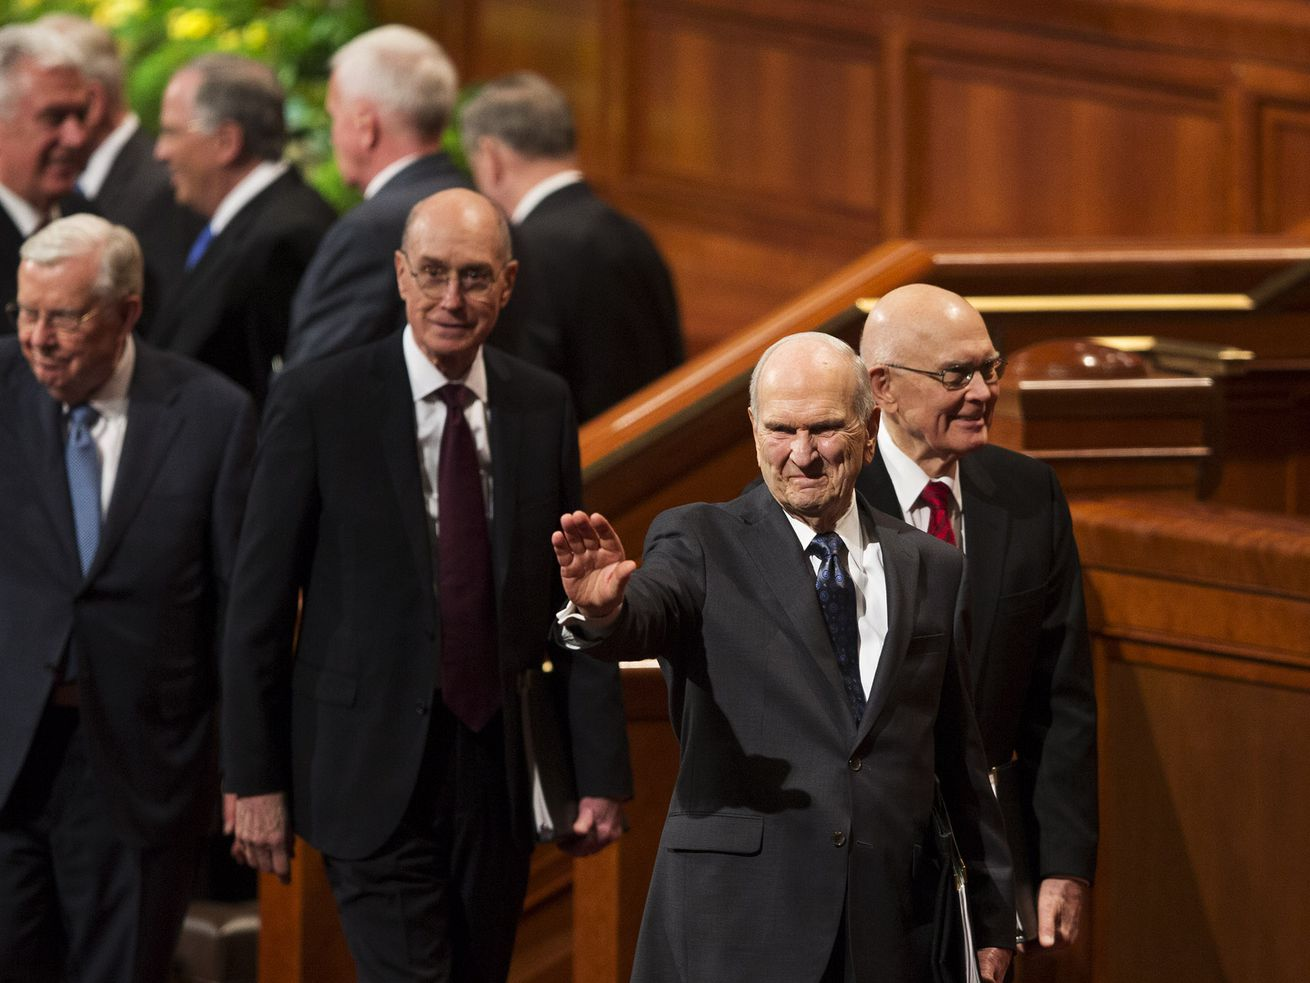 President Henry B. Eyring, Second Counselor in the First Presidency President Dallin H. Oaks, First Counselor in the First Presidency and President Russell M. Nelson exit after the General Priesthood session of the 188th Annual General Conference of The Church of Jesus Christ of Latter-day Saints, in the Conference Center in Salt Lake City on Saturday, March 31, 2018.